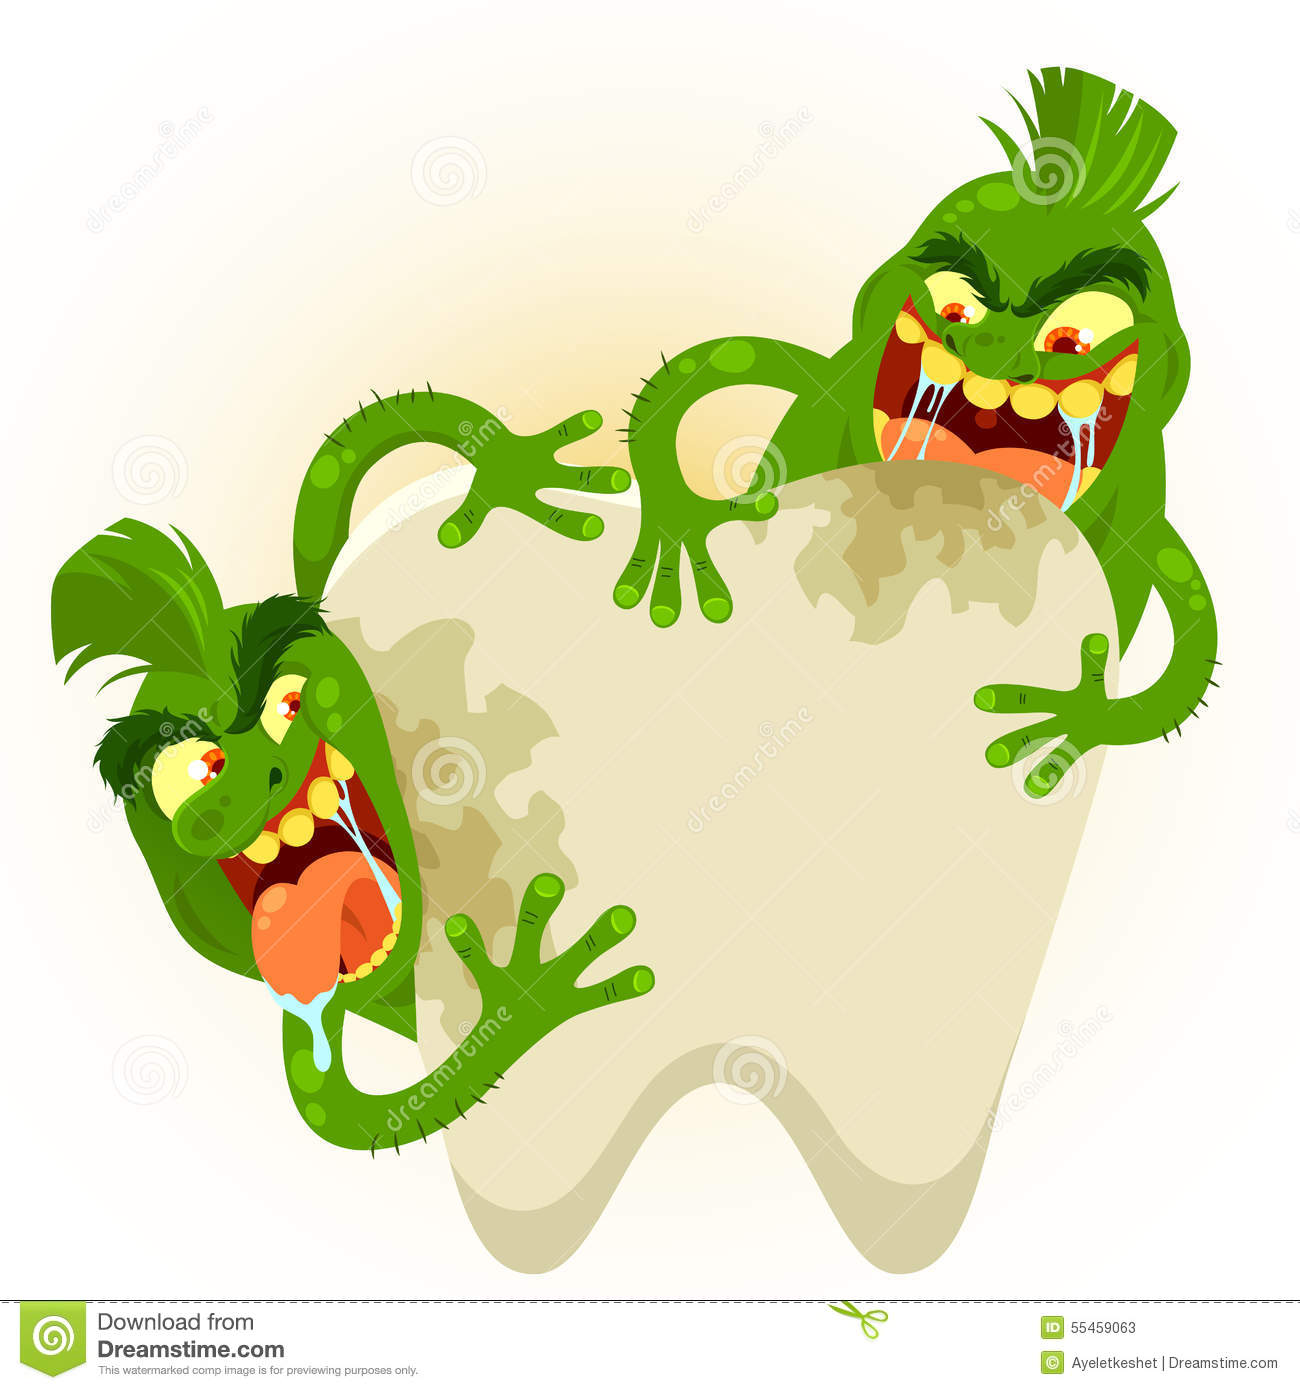 File FrownTeethBig2 as well Shouting Or Yawning Man Open Mouth Vector 4358005 additionally Royalty Free Stock Photo Angry Caterpillar Cartoon Image3521635 as well Angry Eyes By Cgillis73 additionally Royalty Free Stock Image Tiger Head Image26596396. on scary mouth clip art